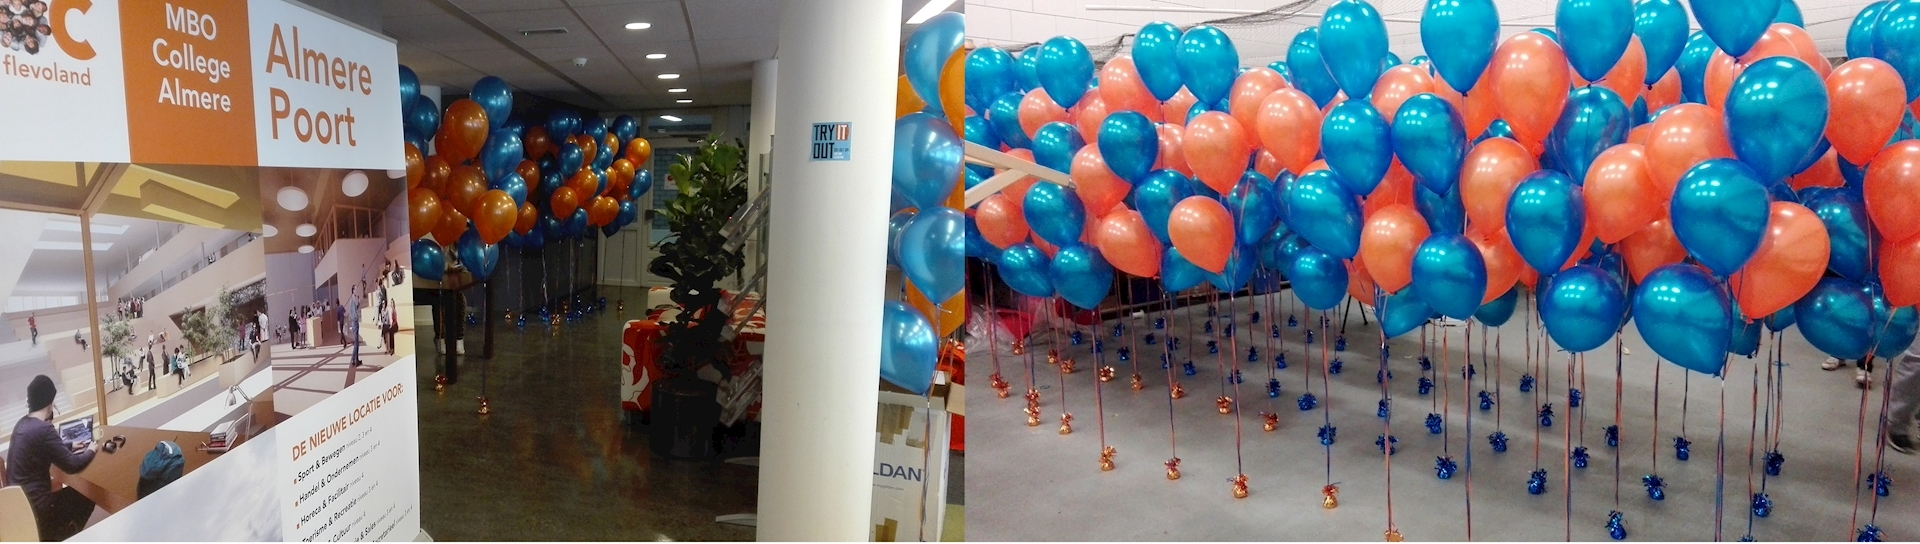 ballon decoratie open dag ROC Almere trossen